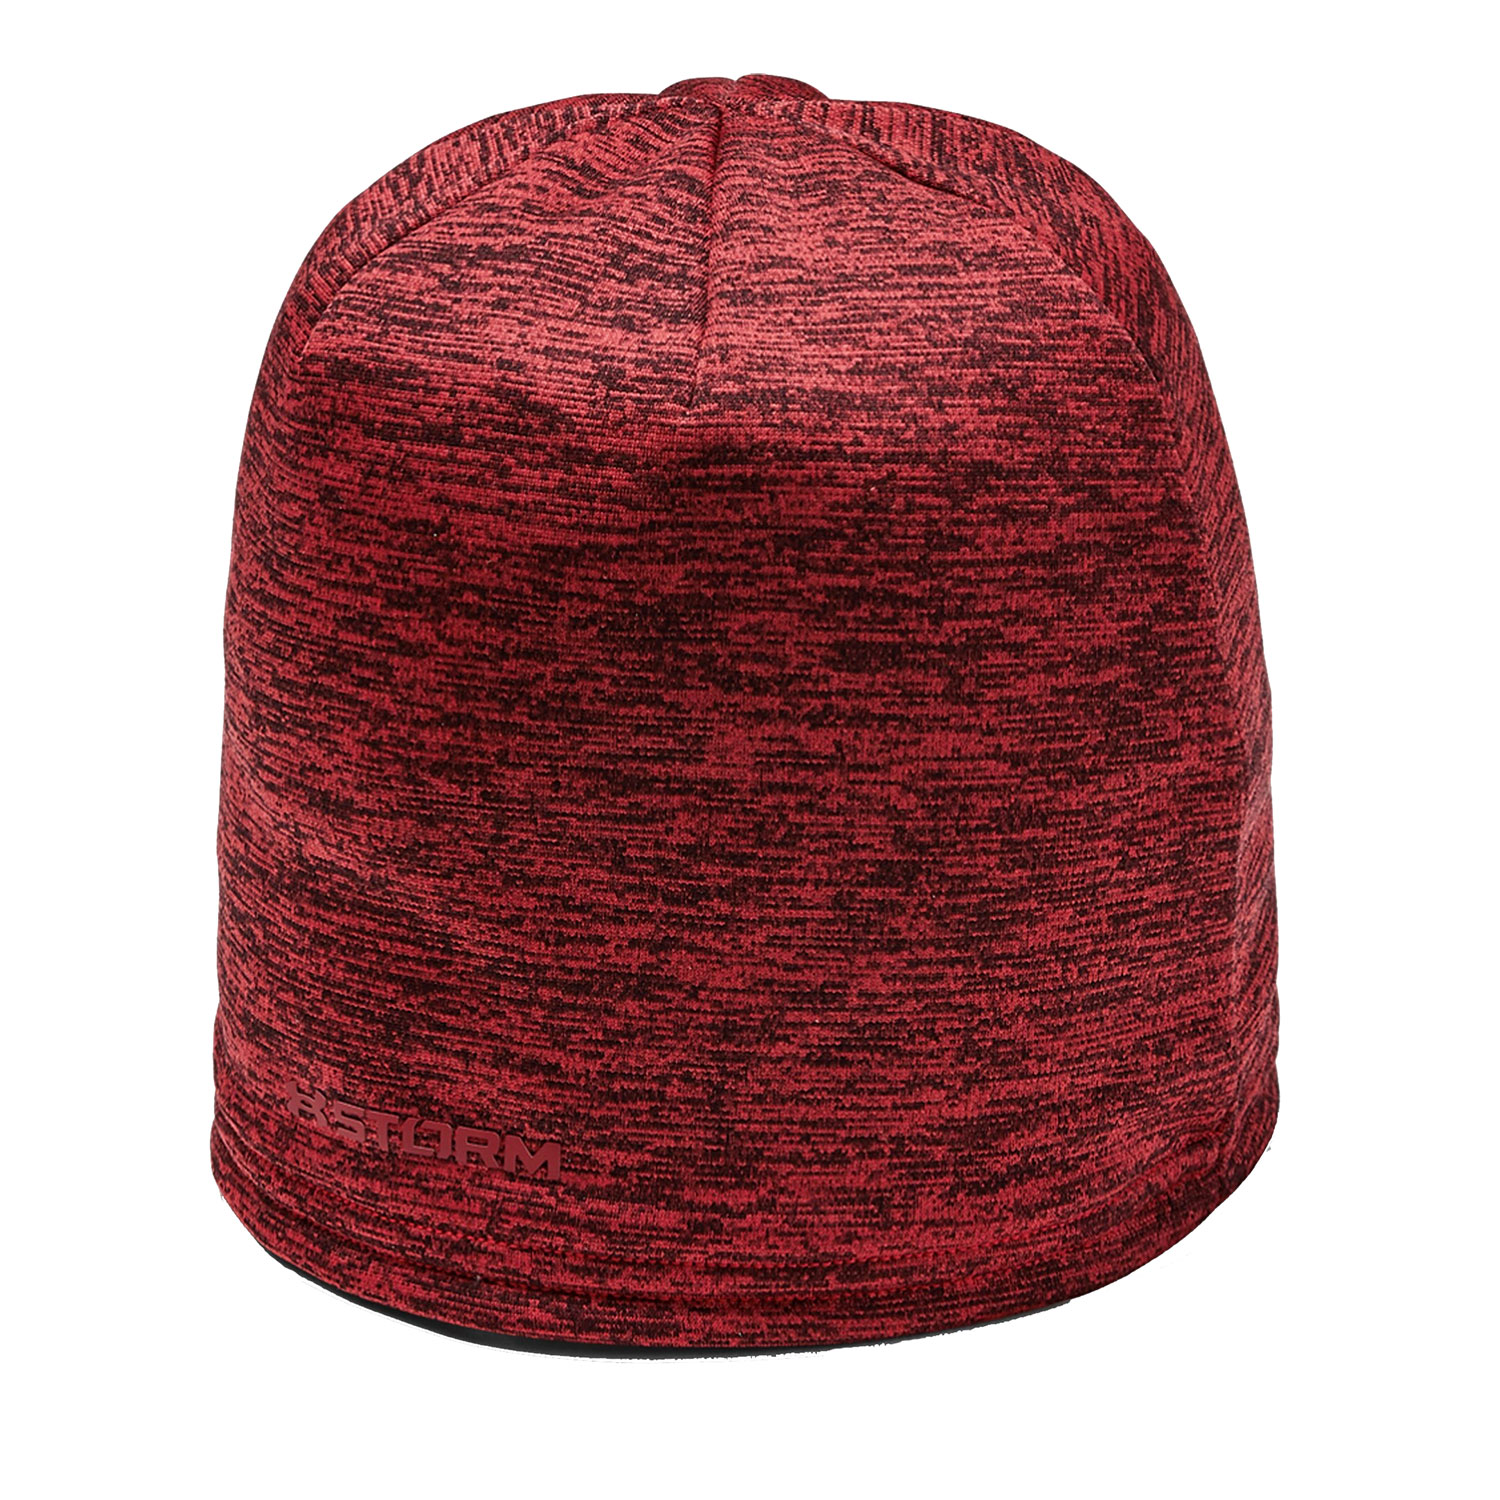 Under Armour Storm Fleece Beanie - Red